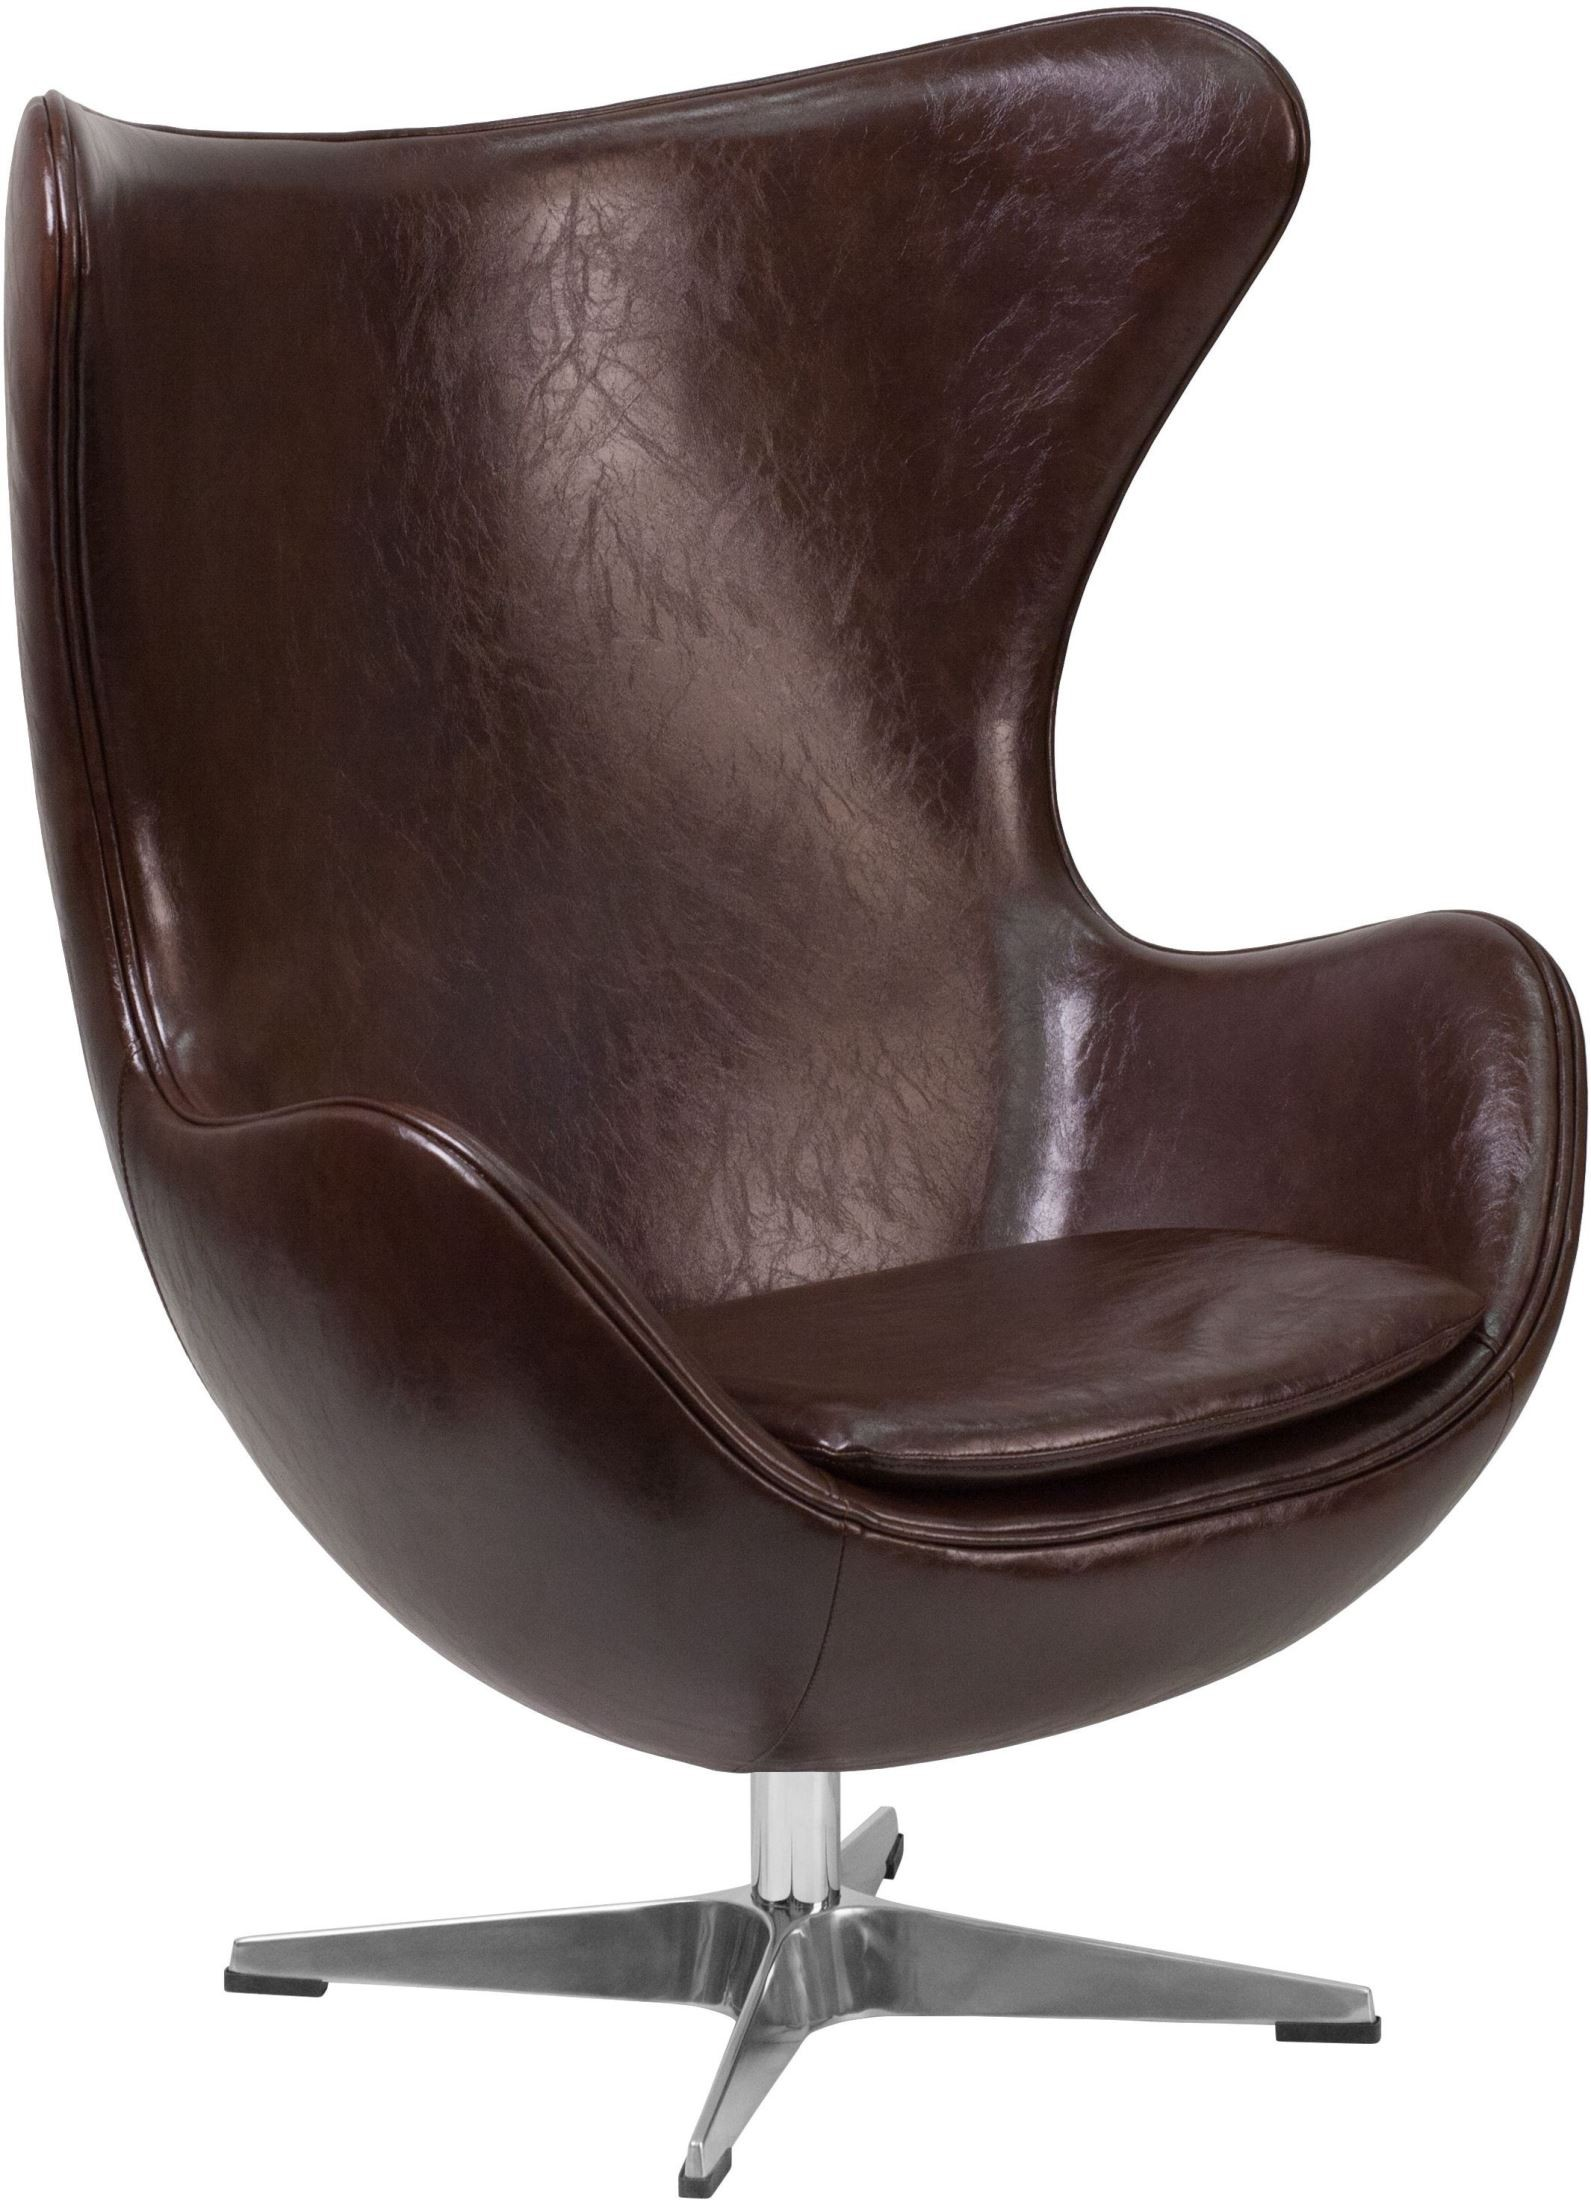 Brown Leather Egg Chair Brown Leather Egg Chair With Tilt Lock Mechanism From